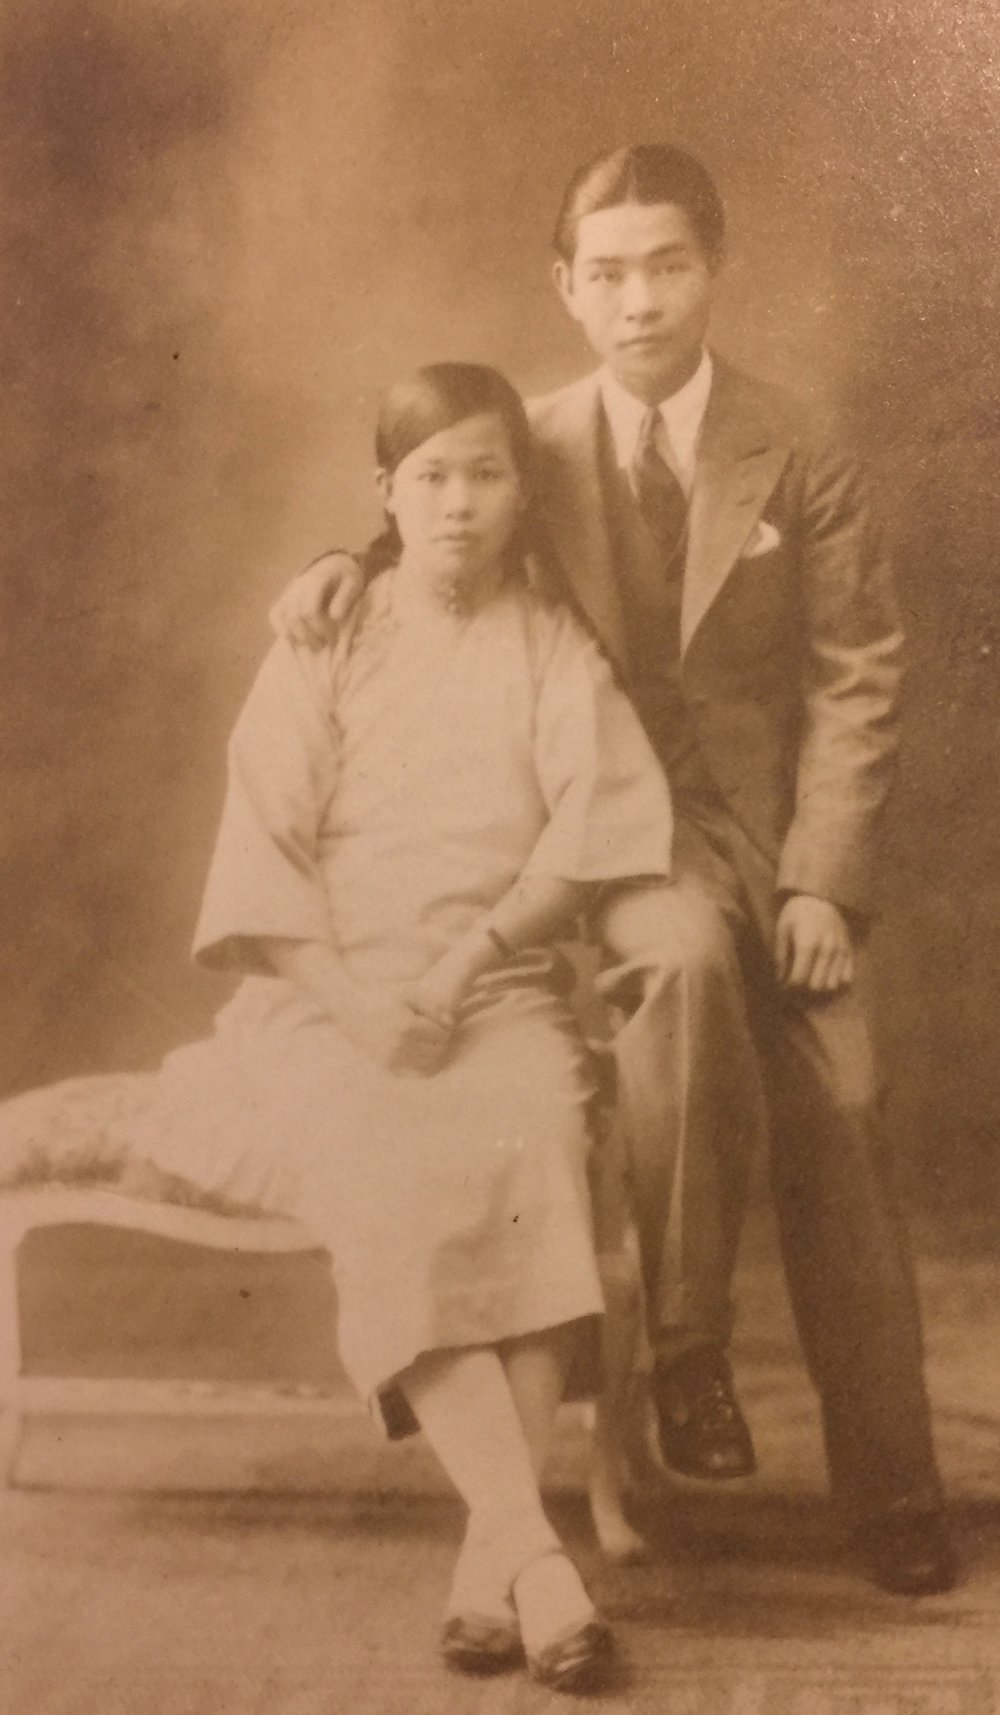 Cynthia's parents, May Soon Gee and Walter Yee, Guangzhou, China, c.1930. They snuck out in the city to take this photo without telling his mother. (photo courtesy of Cynthia Yee)